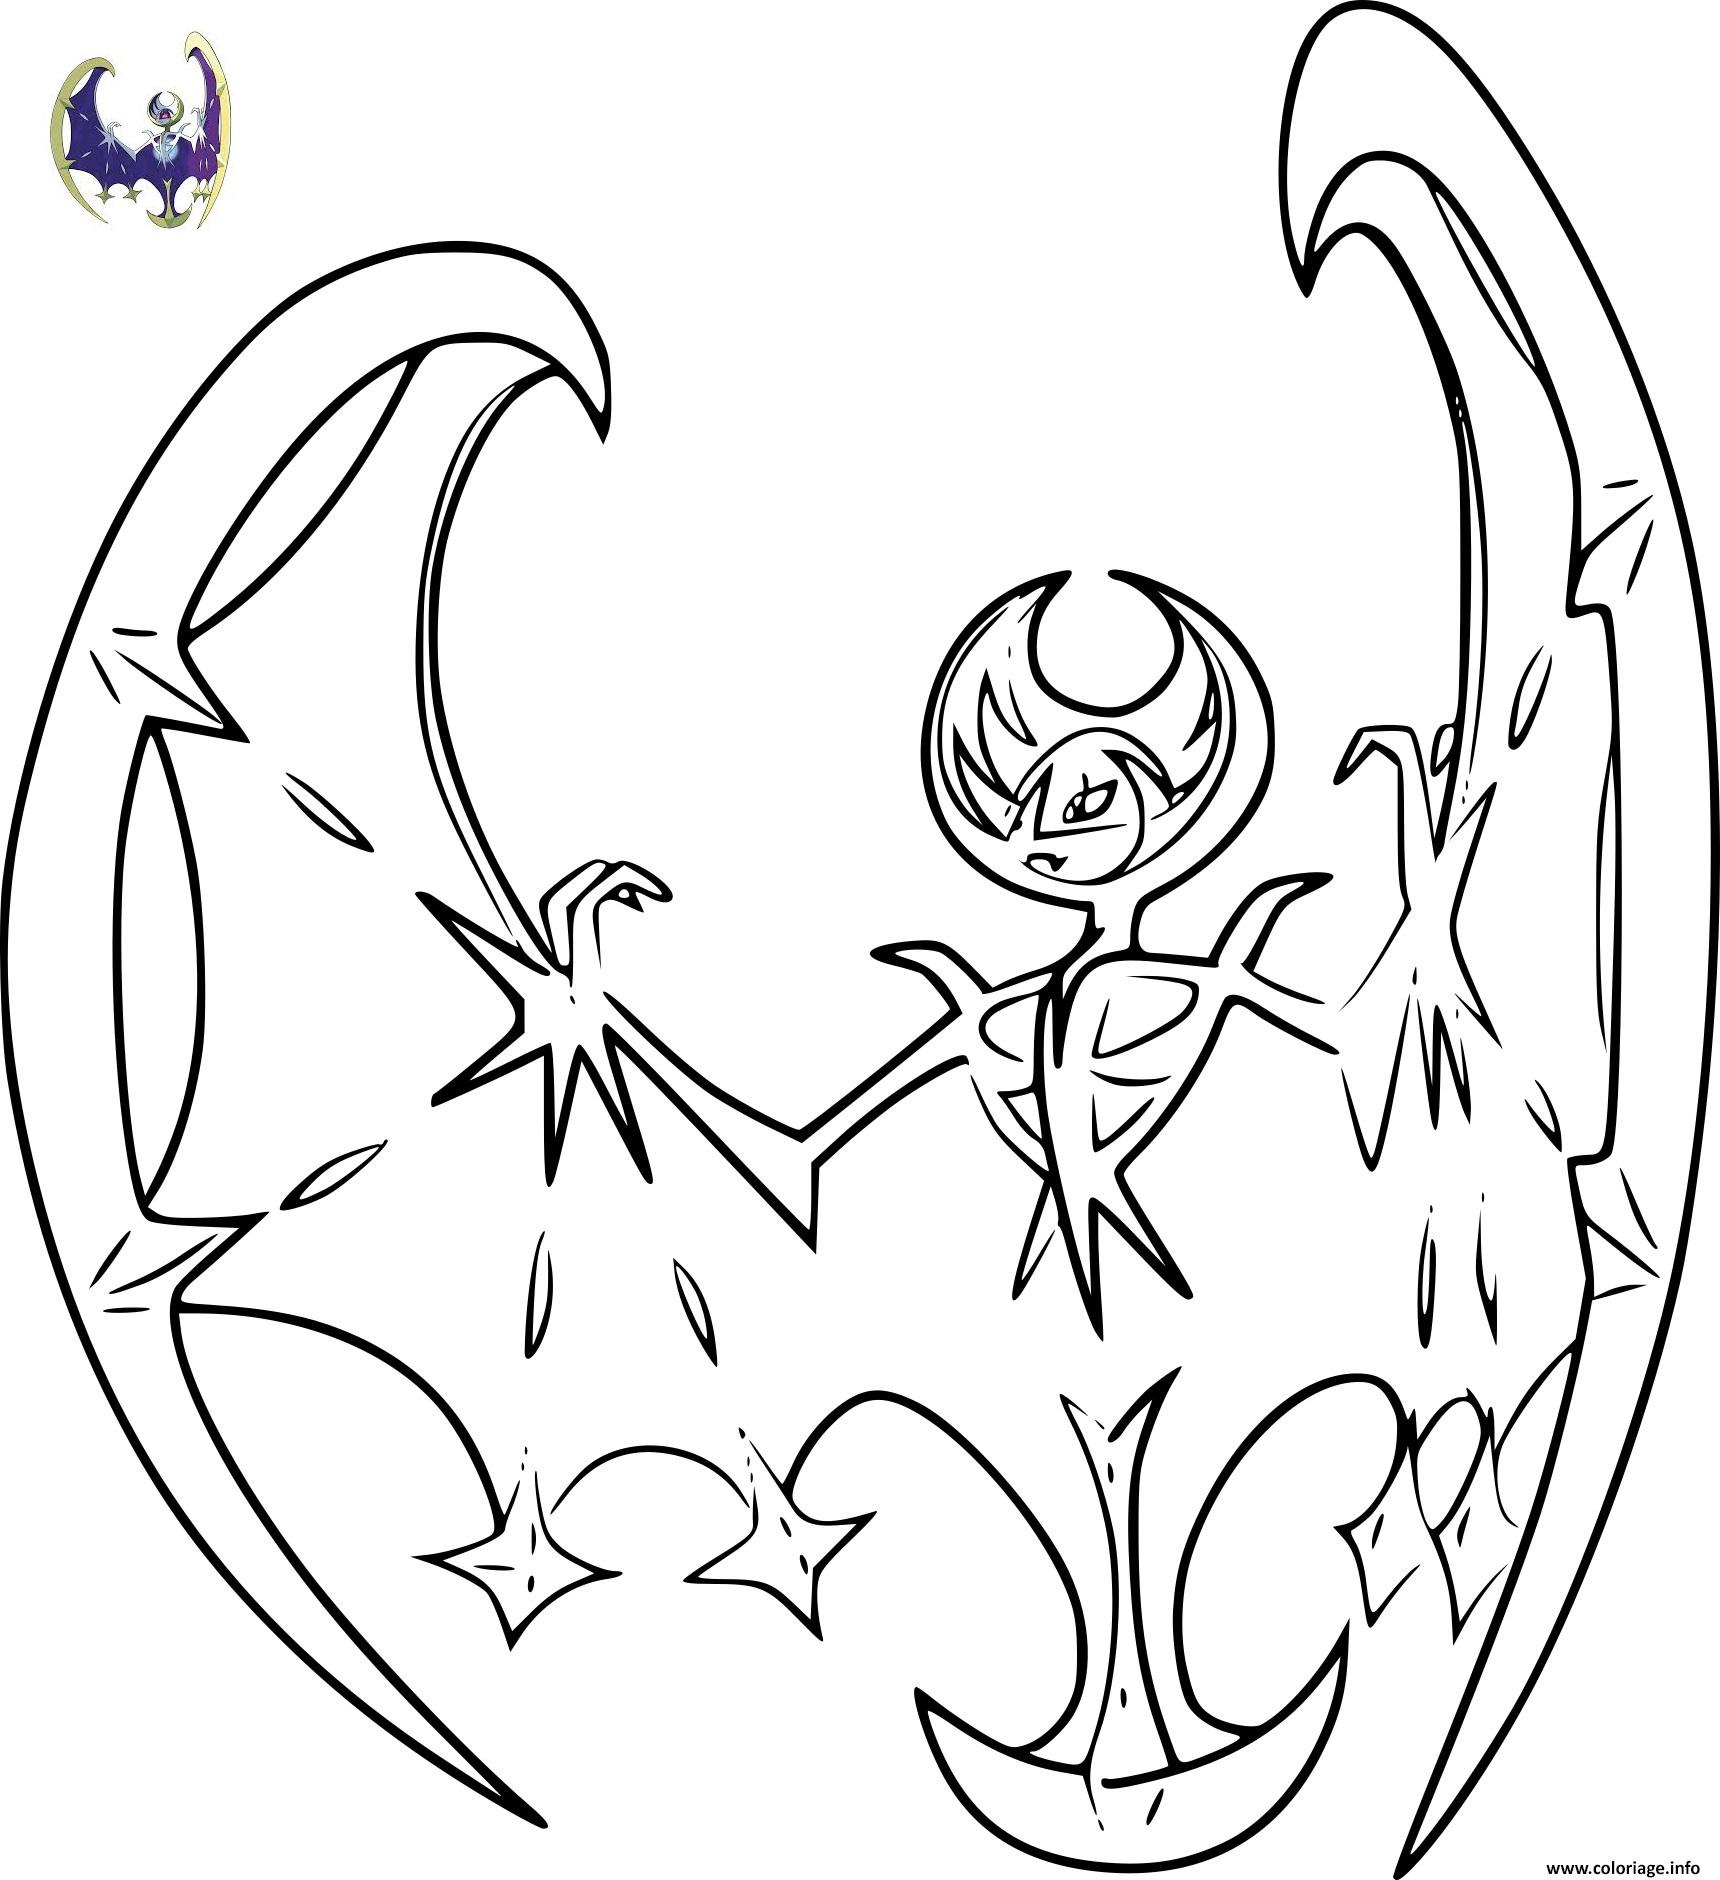 Coloriage pokemon lunala - Coloriage carte pokemon ...